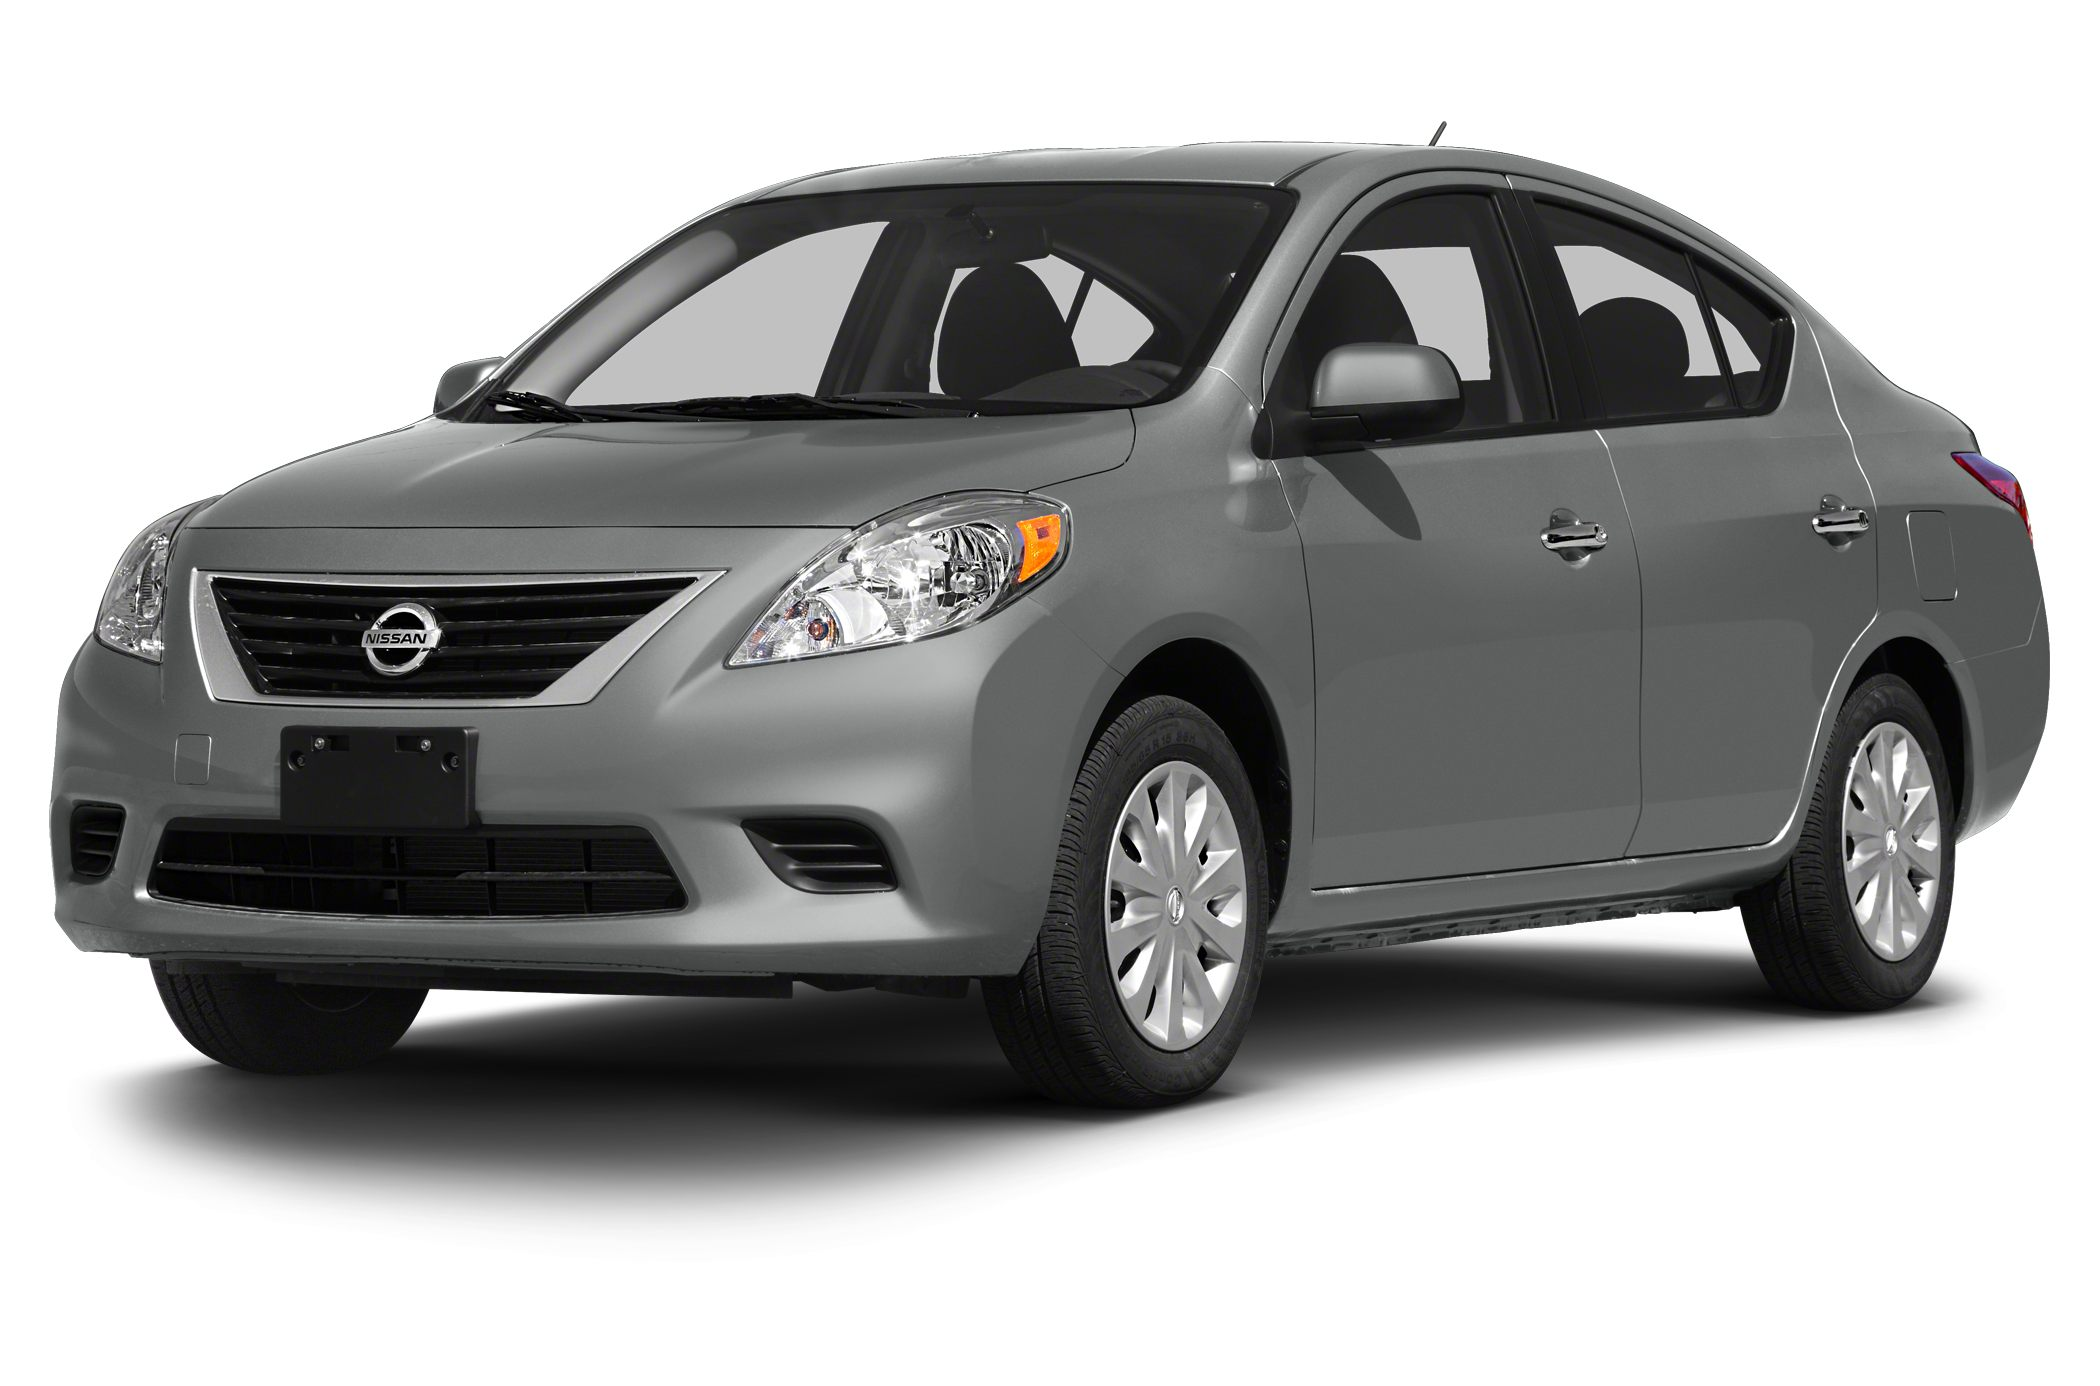 2013 Nissan Versa 16 S Proudly serving manatee county for over 60 years offering Cars Trucks SU